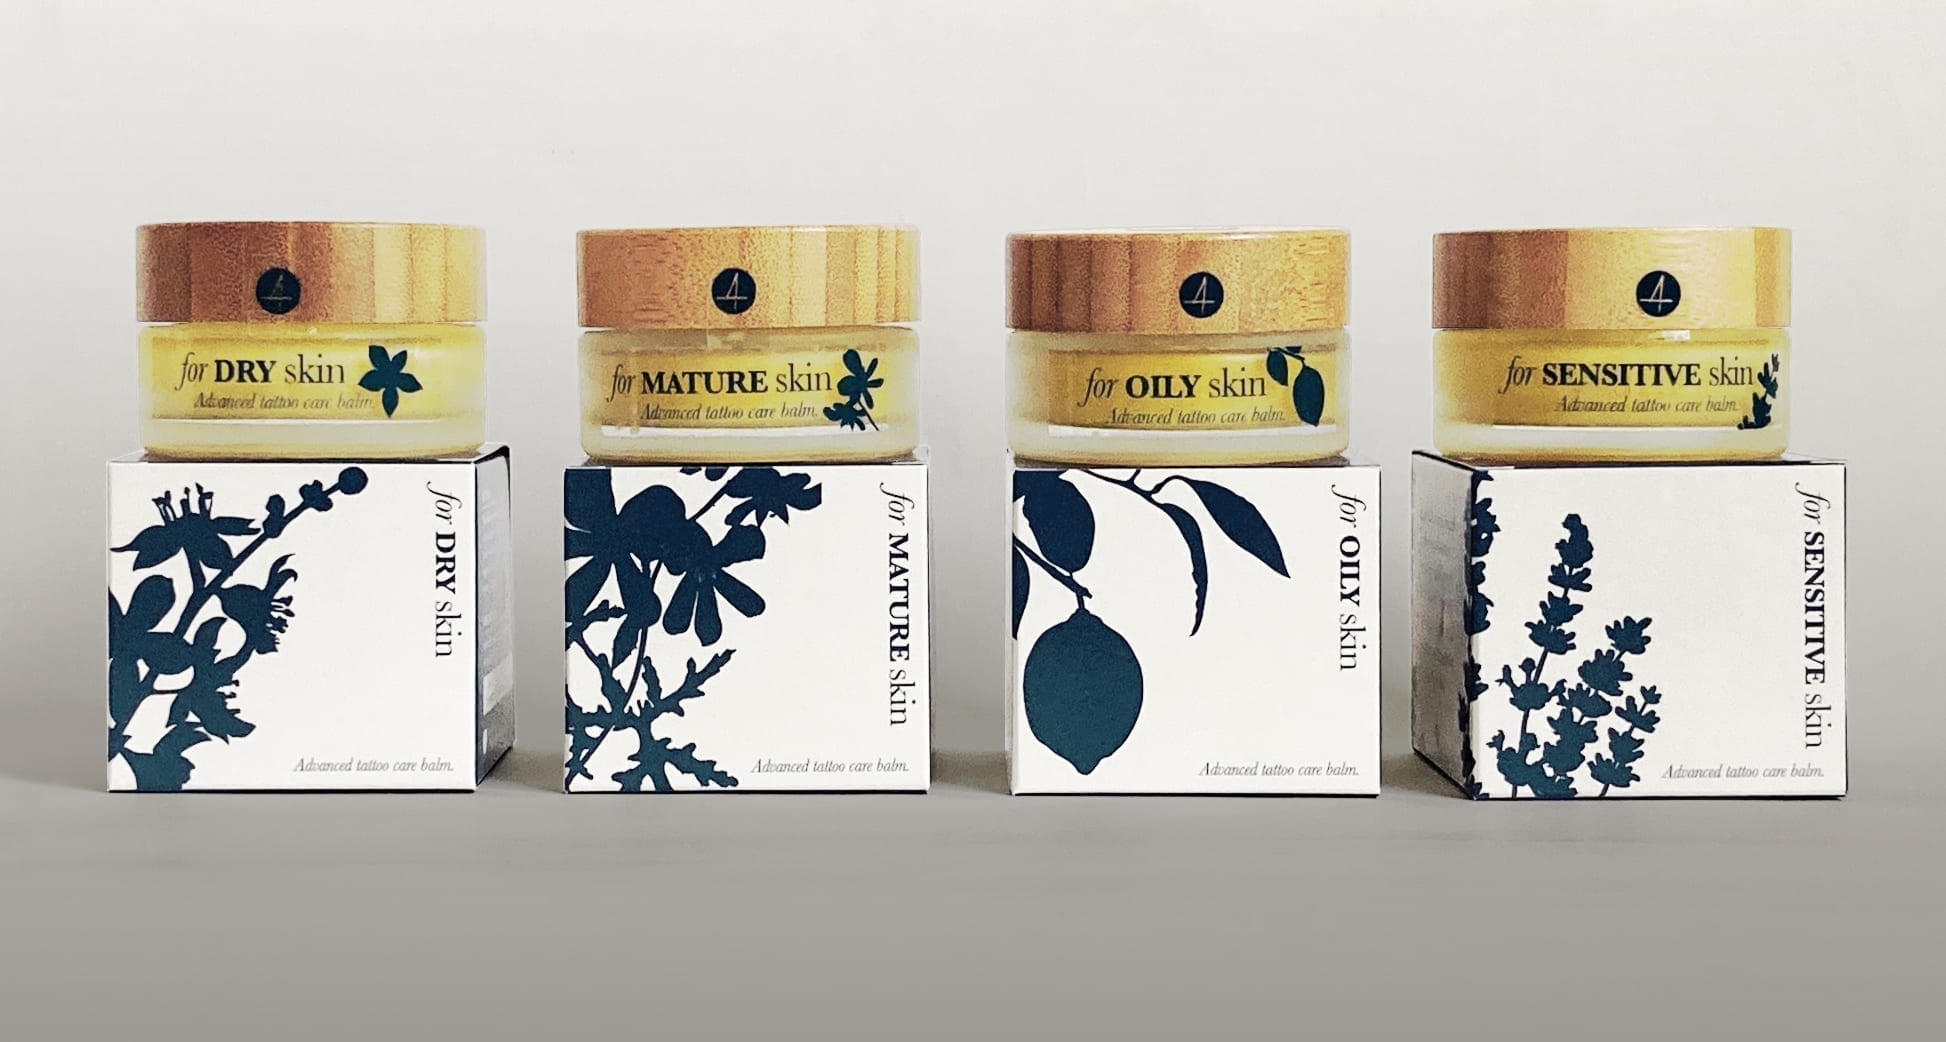 The four different boxes and their associated jar designs for Four Tattoo Care's balms. Differentiated by graphics and text.